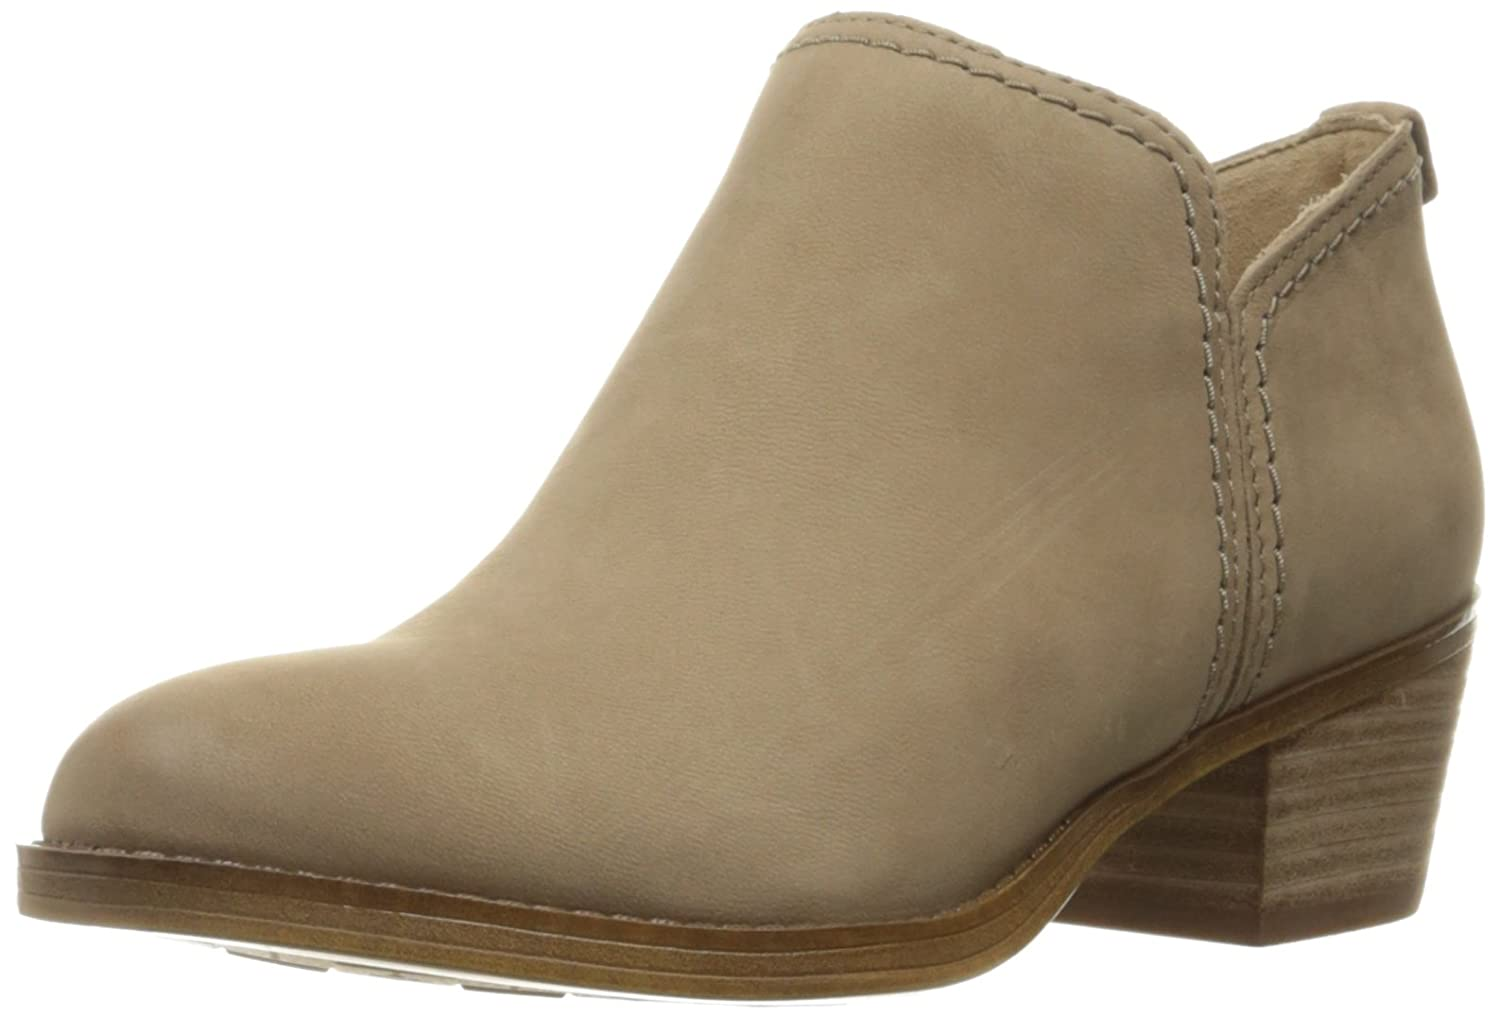 Naturalizer Women's Zarie Boot B01HN8A6KK 9 W US|Taupe